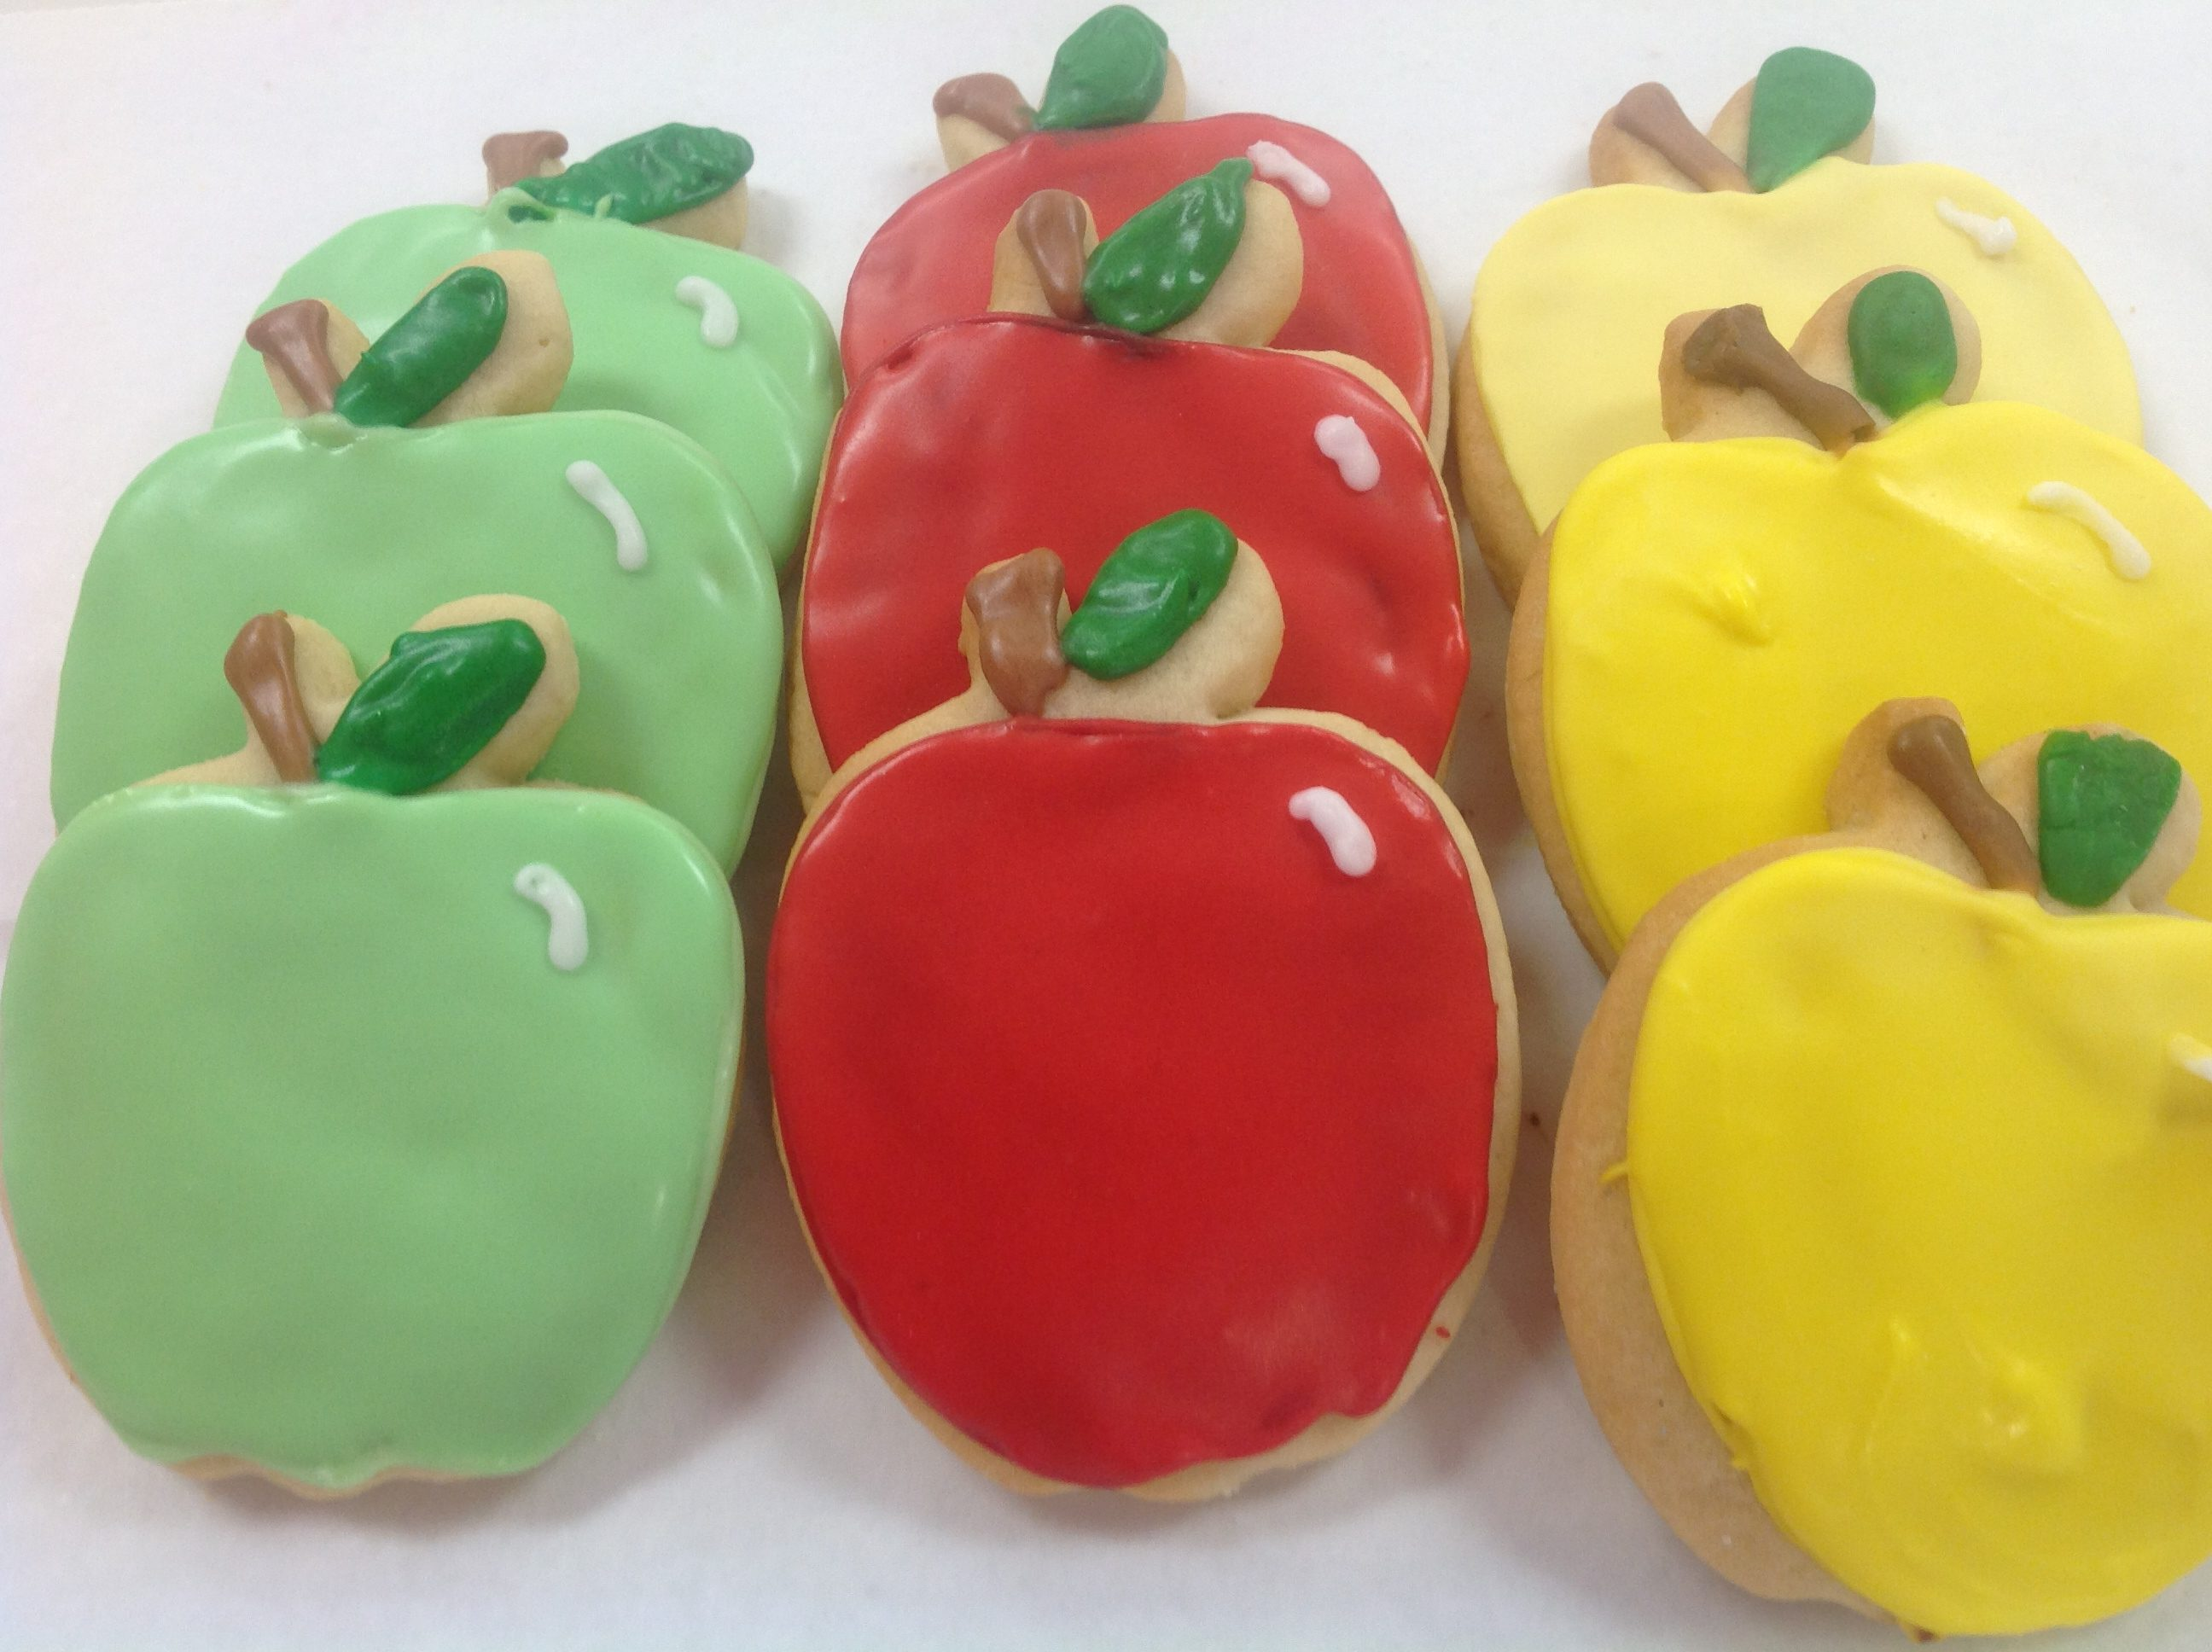 Apple Cutout Cookies at Dolce and Biscotti Italian Bakery